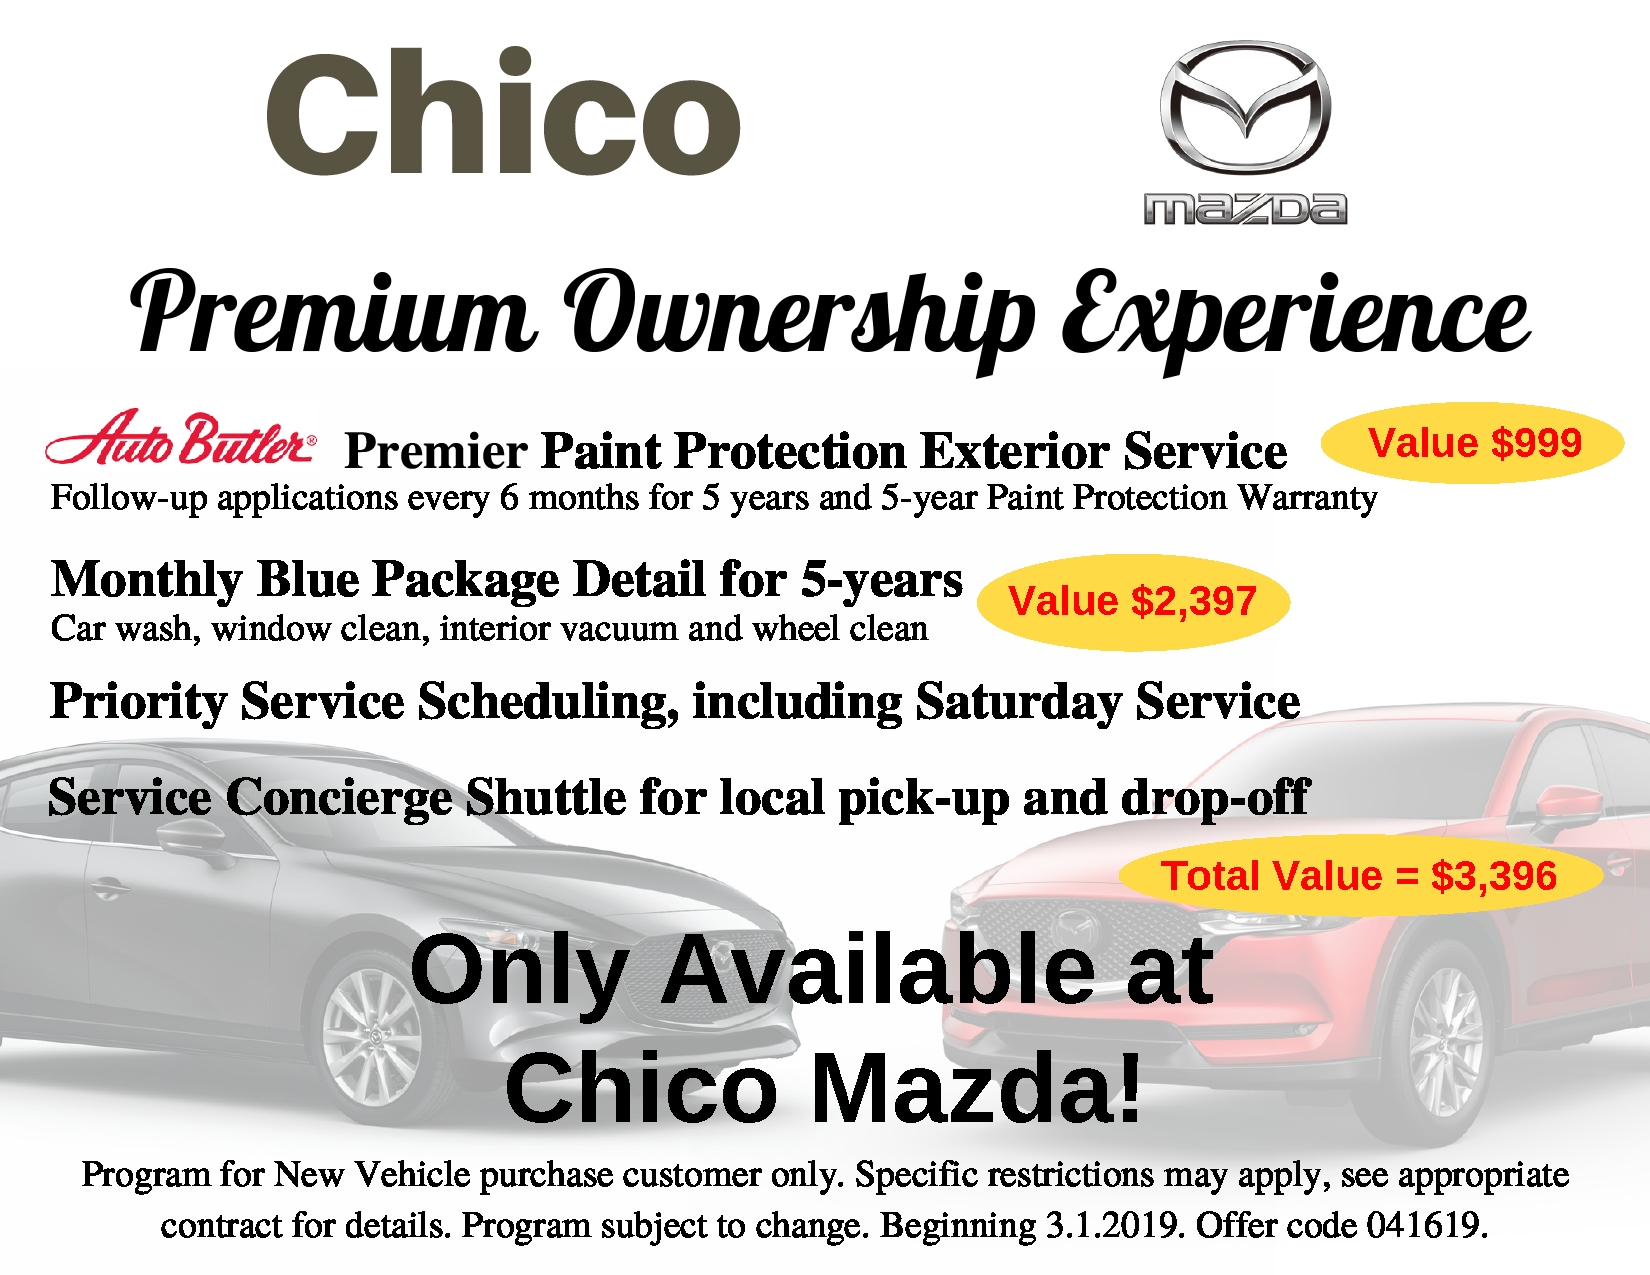 Car Wash Chico >> Premium Ownership Experience Chico Mazda